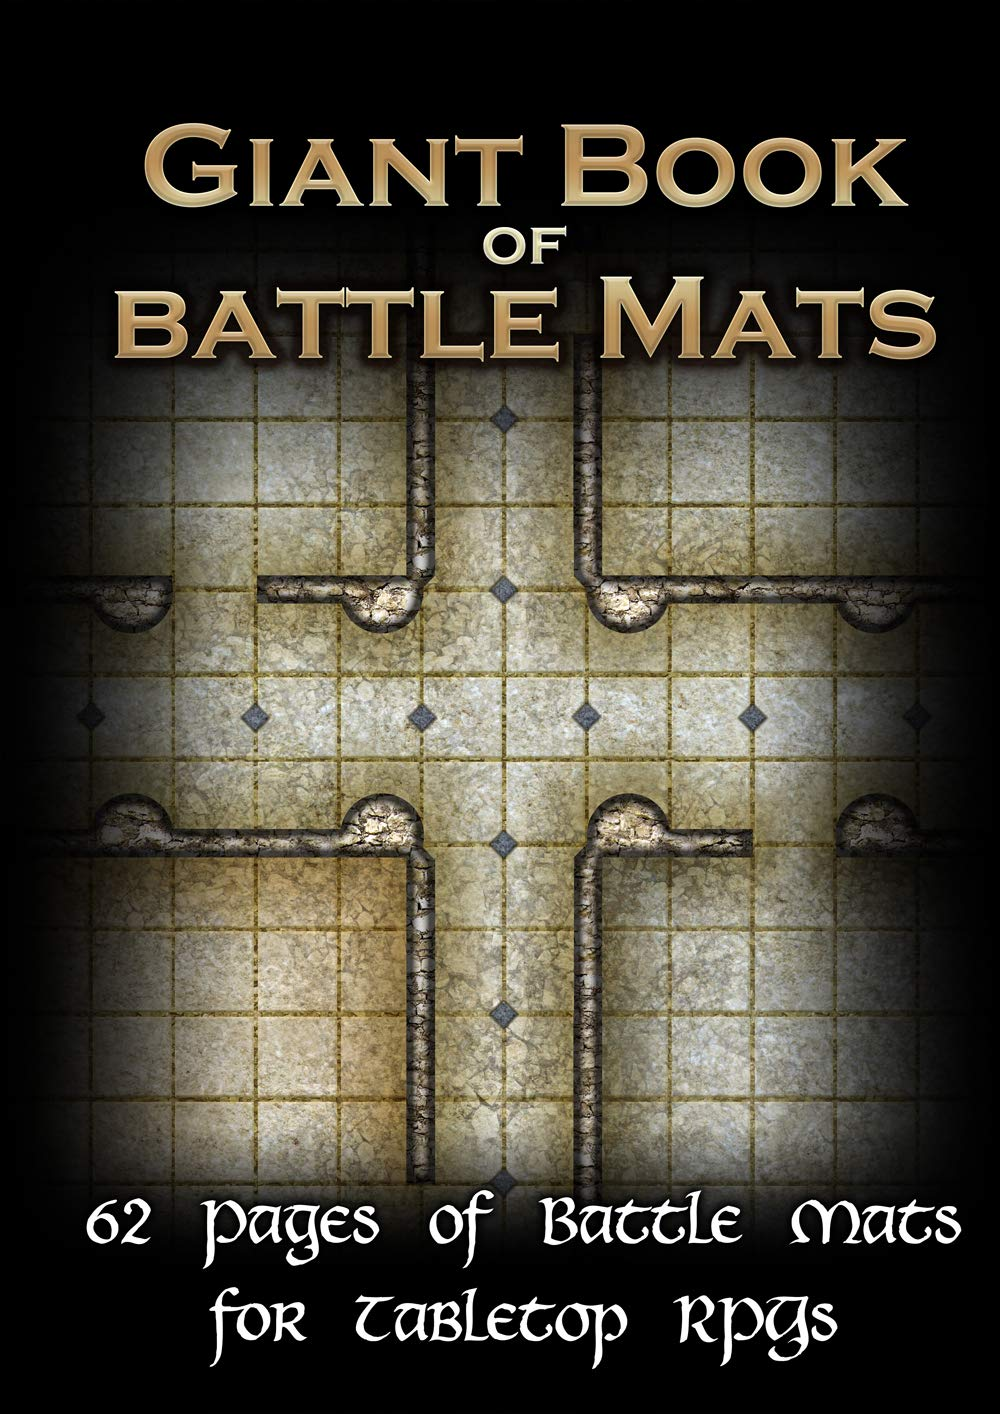 Giant Book Battle Mats product image